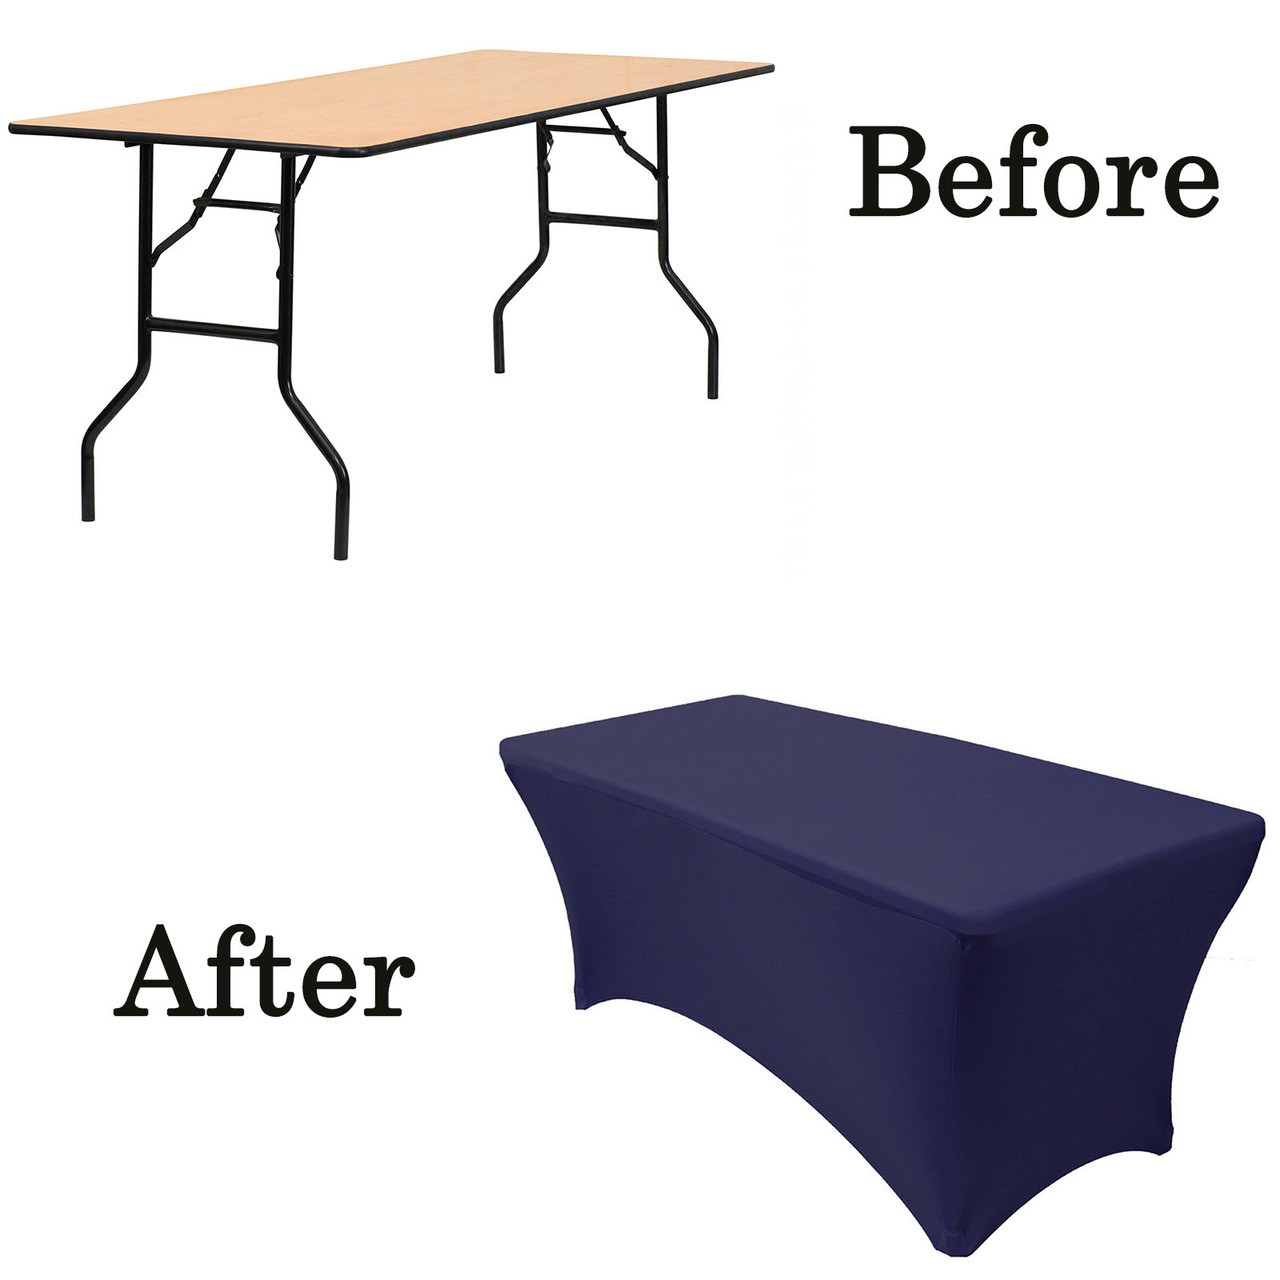 6 Ft Rectangular Spandex Table Covers Navy Blue Wholesale Wedding Tablecloths